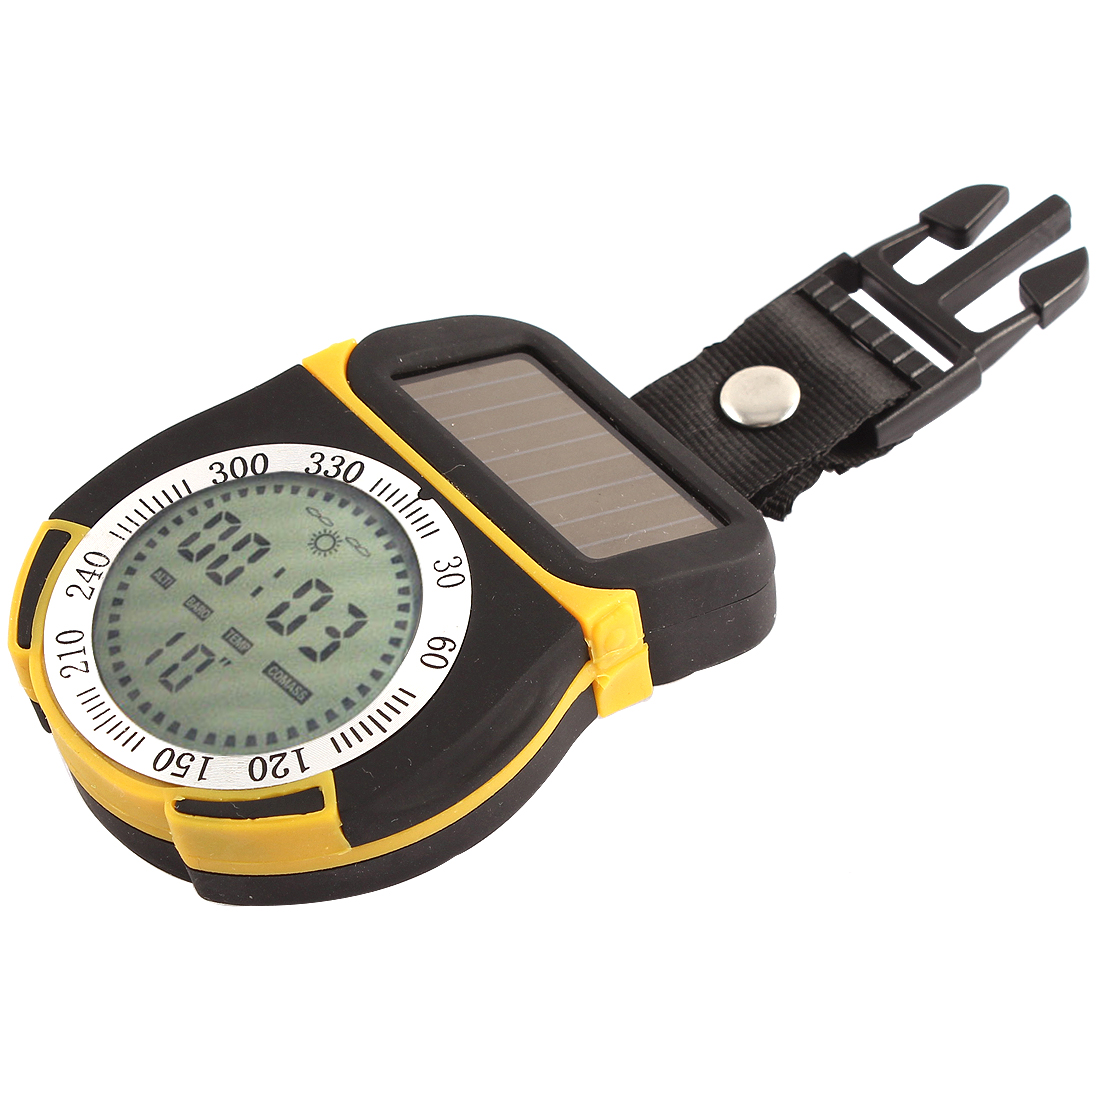 Multifunctional Barometer Thermometer Compass Solar Power Digital Altimeter